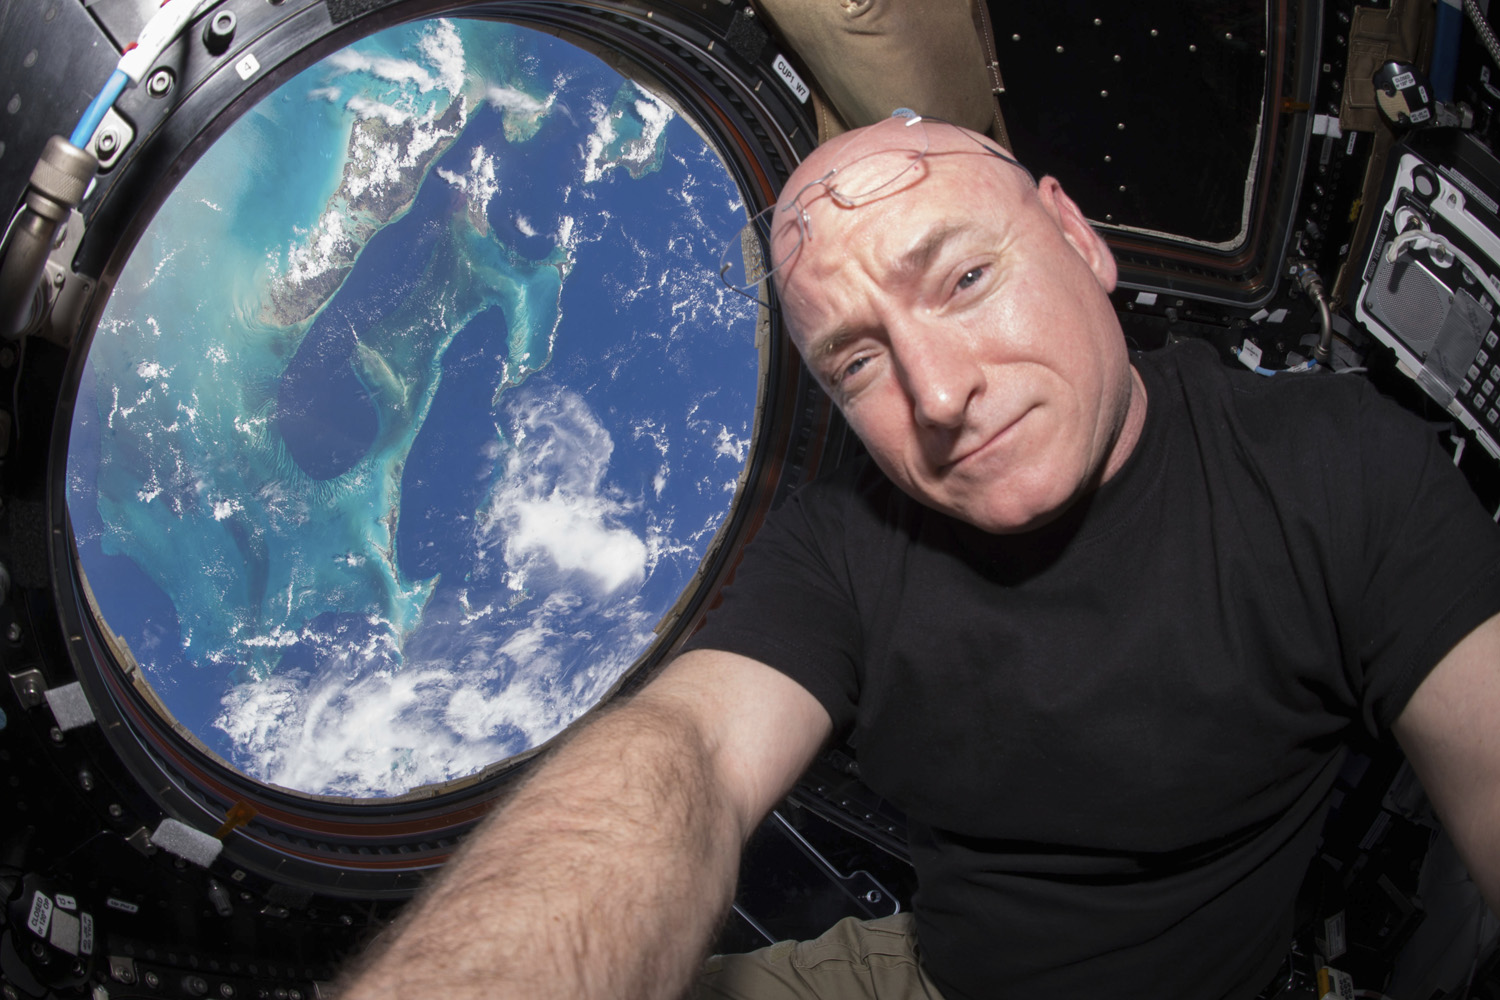 Astronaut Scott Kelly takes a photo of himself inside the International Space Station in 2015. (Scott Kelly/NASA via AP)